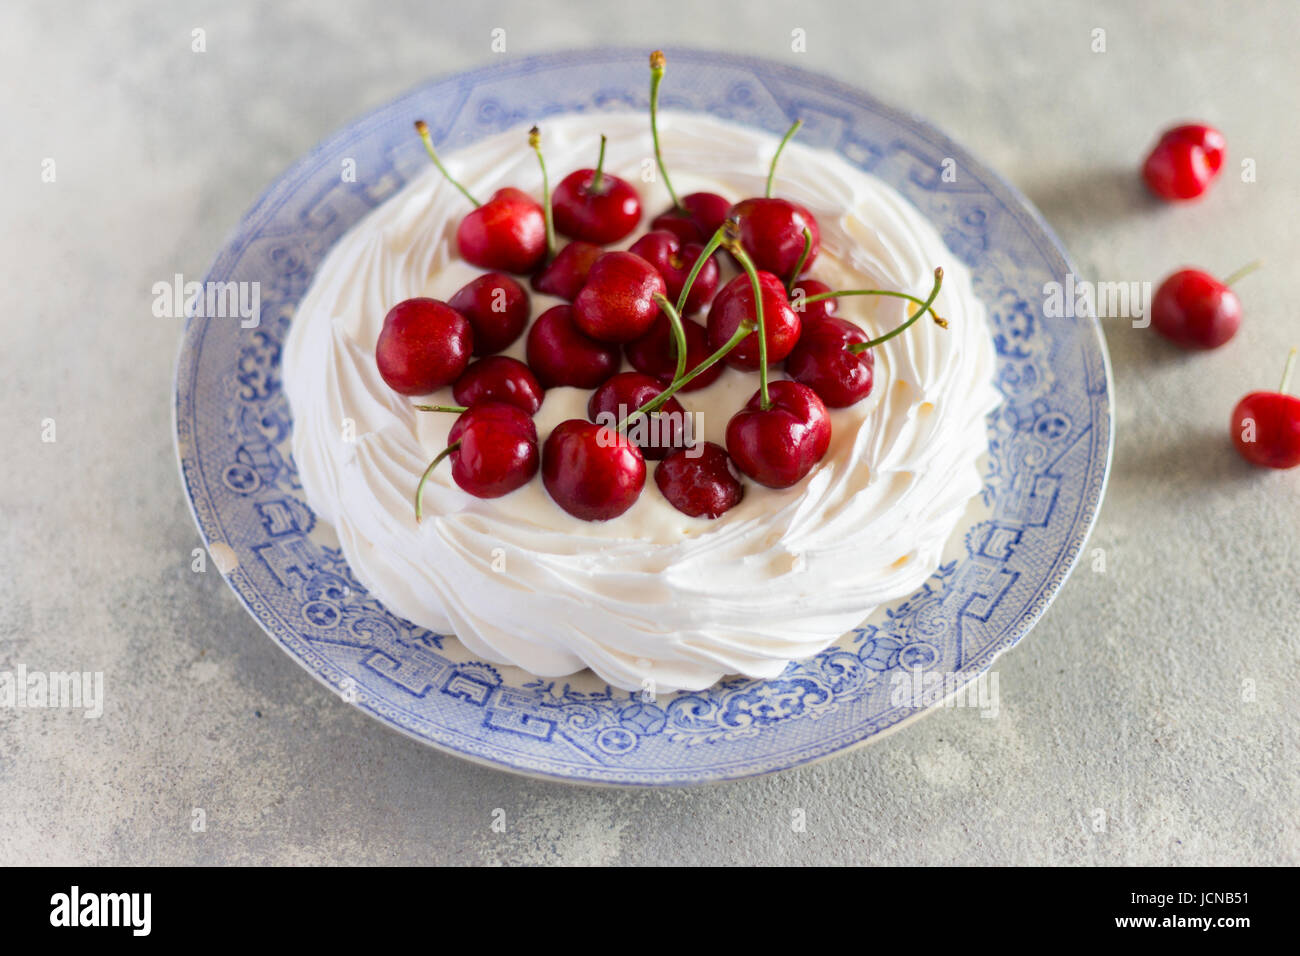 Pavlova with fresh cherries - Stock Image